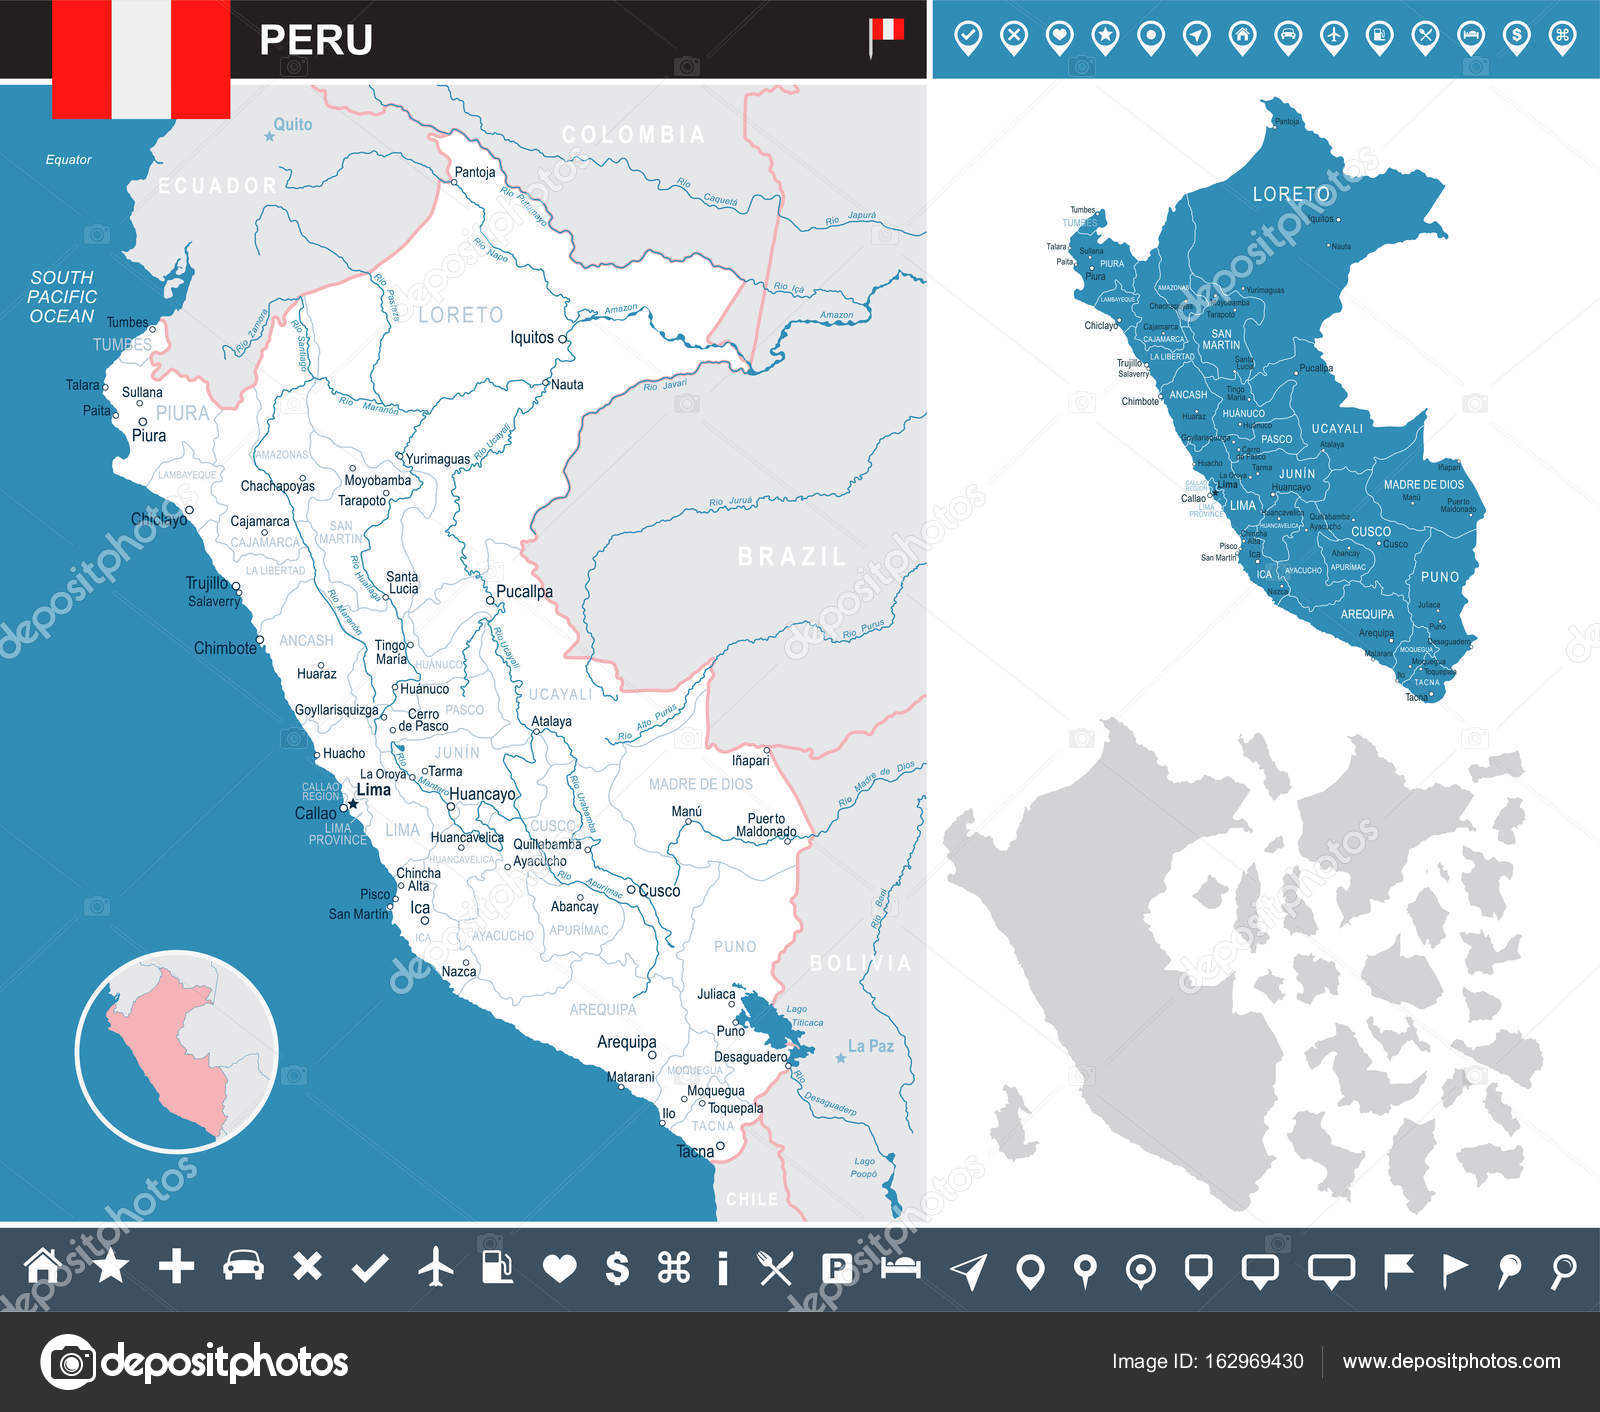 Peru infographic map and flag illustration Stock Vector